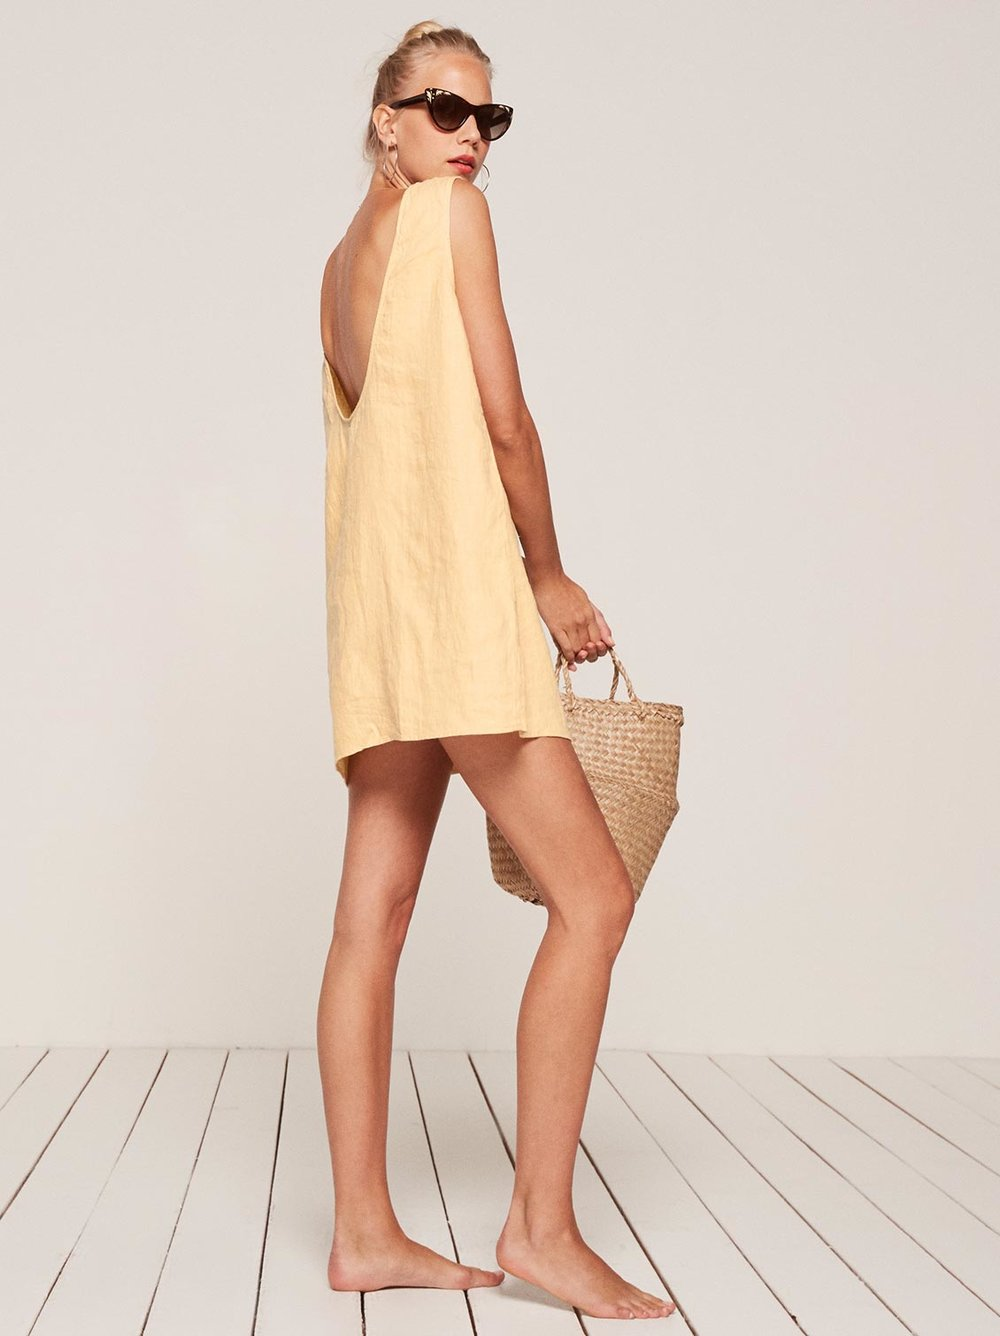 BARBADOS_DRESS_BUTTERCUP_4.jpg